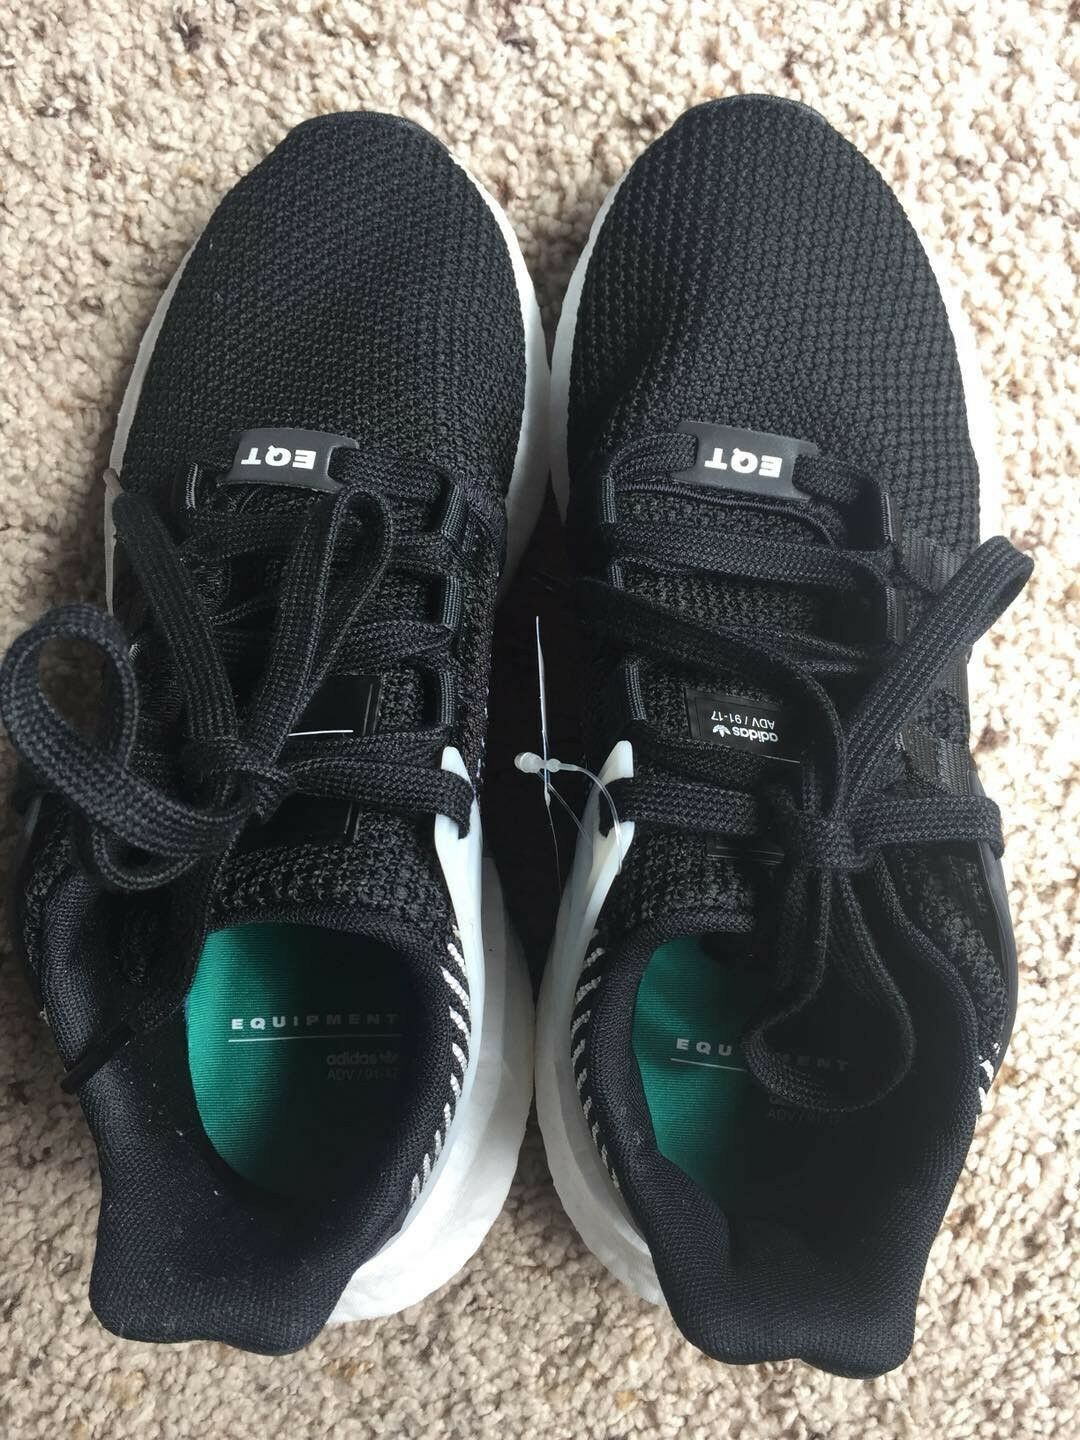 ADIDAS Womens 6.5 EQT SUPPORT 93 17 PRIMEKNIT BOOST BOOST BOOST BY9509 LIFESTYLE SHOES  180 5c95cc